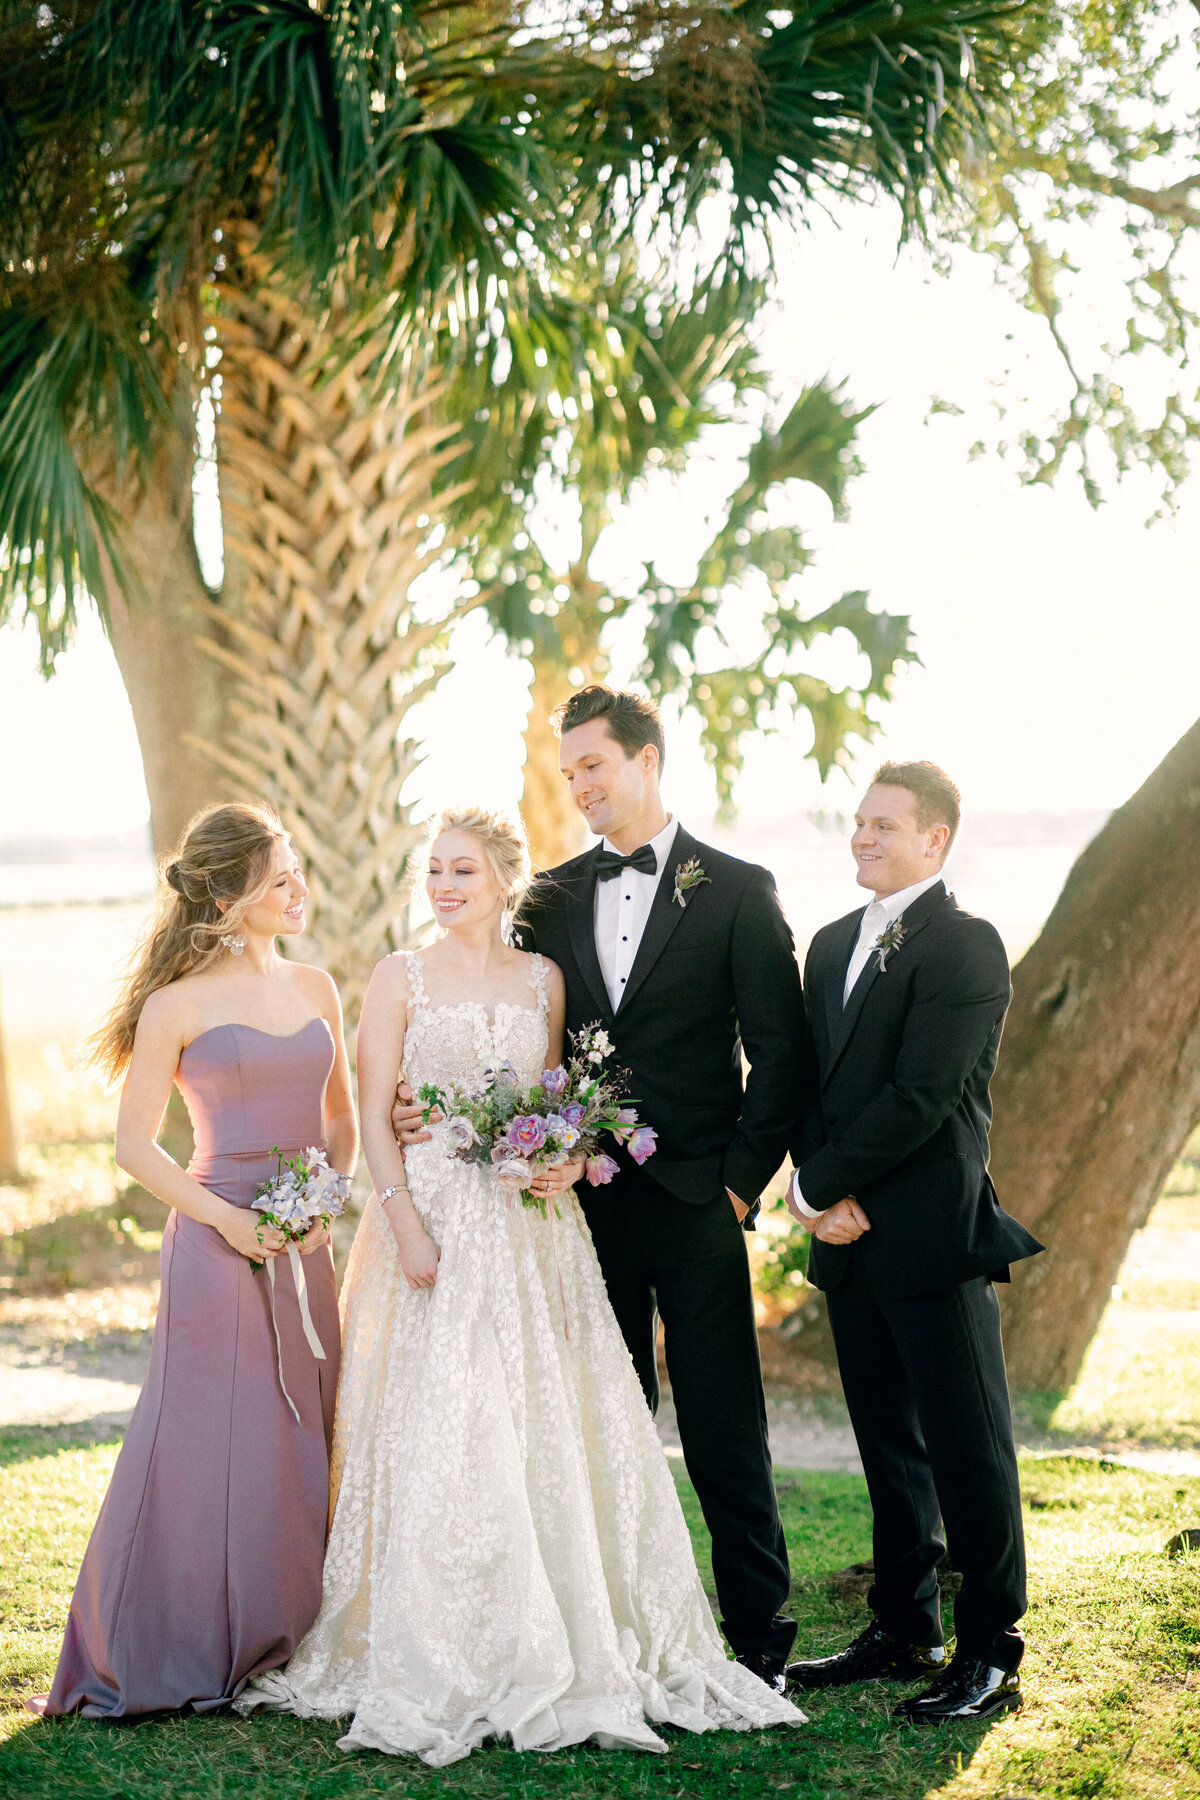 Bride and groom with maid of honor and best man by trees outside wedding